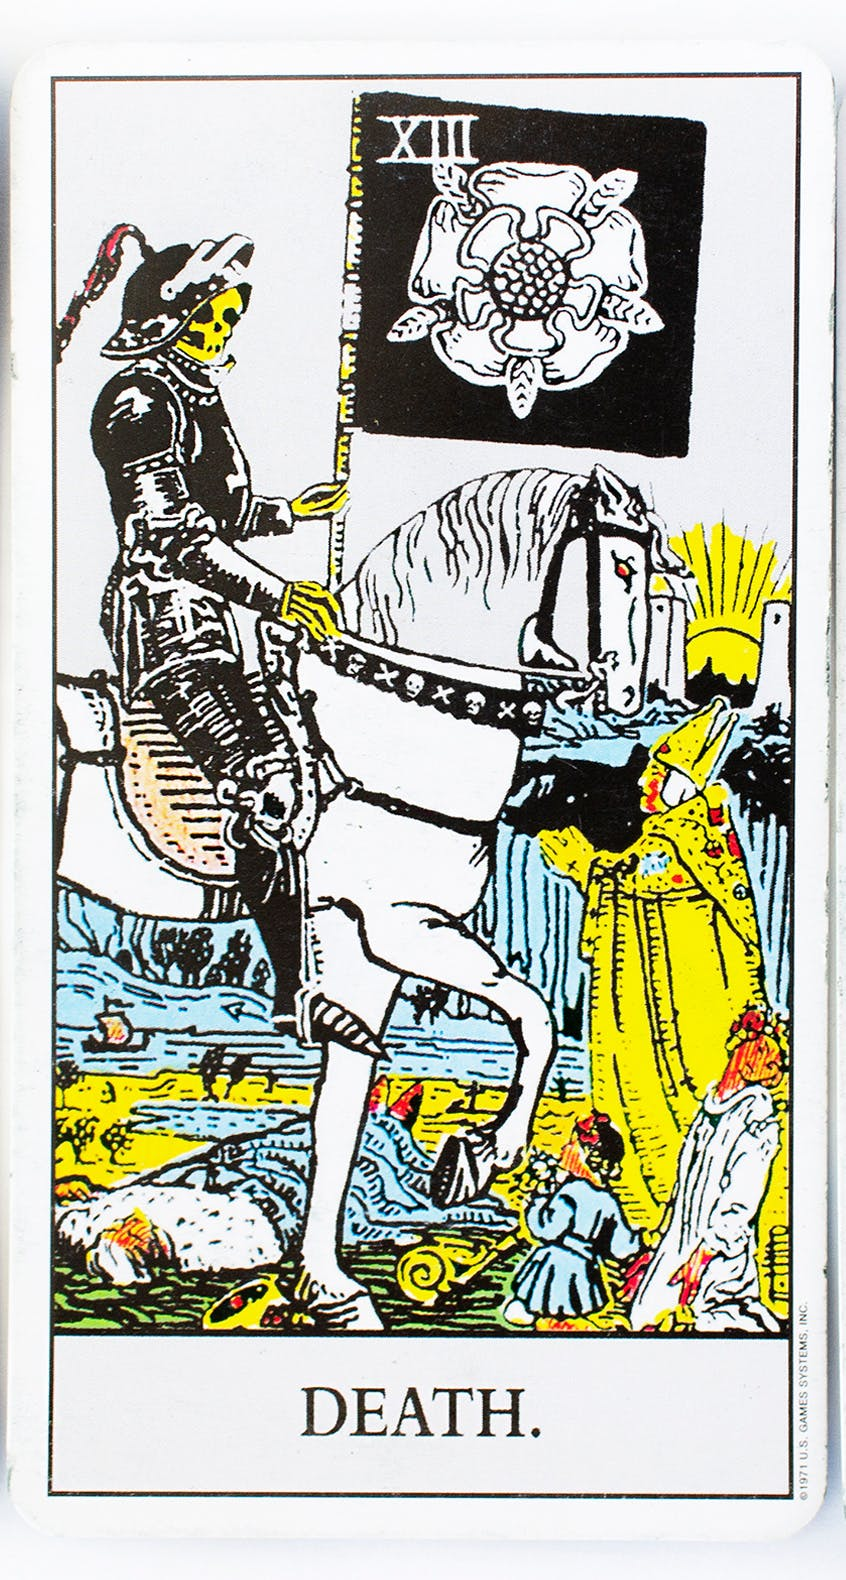 teh death tarot card from the rider-waite deck. image of a skeleton riding a horse while holding a sickle and common people being crushed underneath.